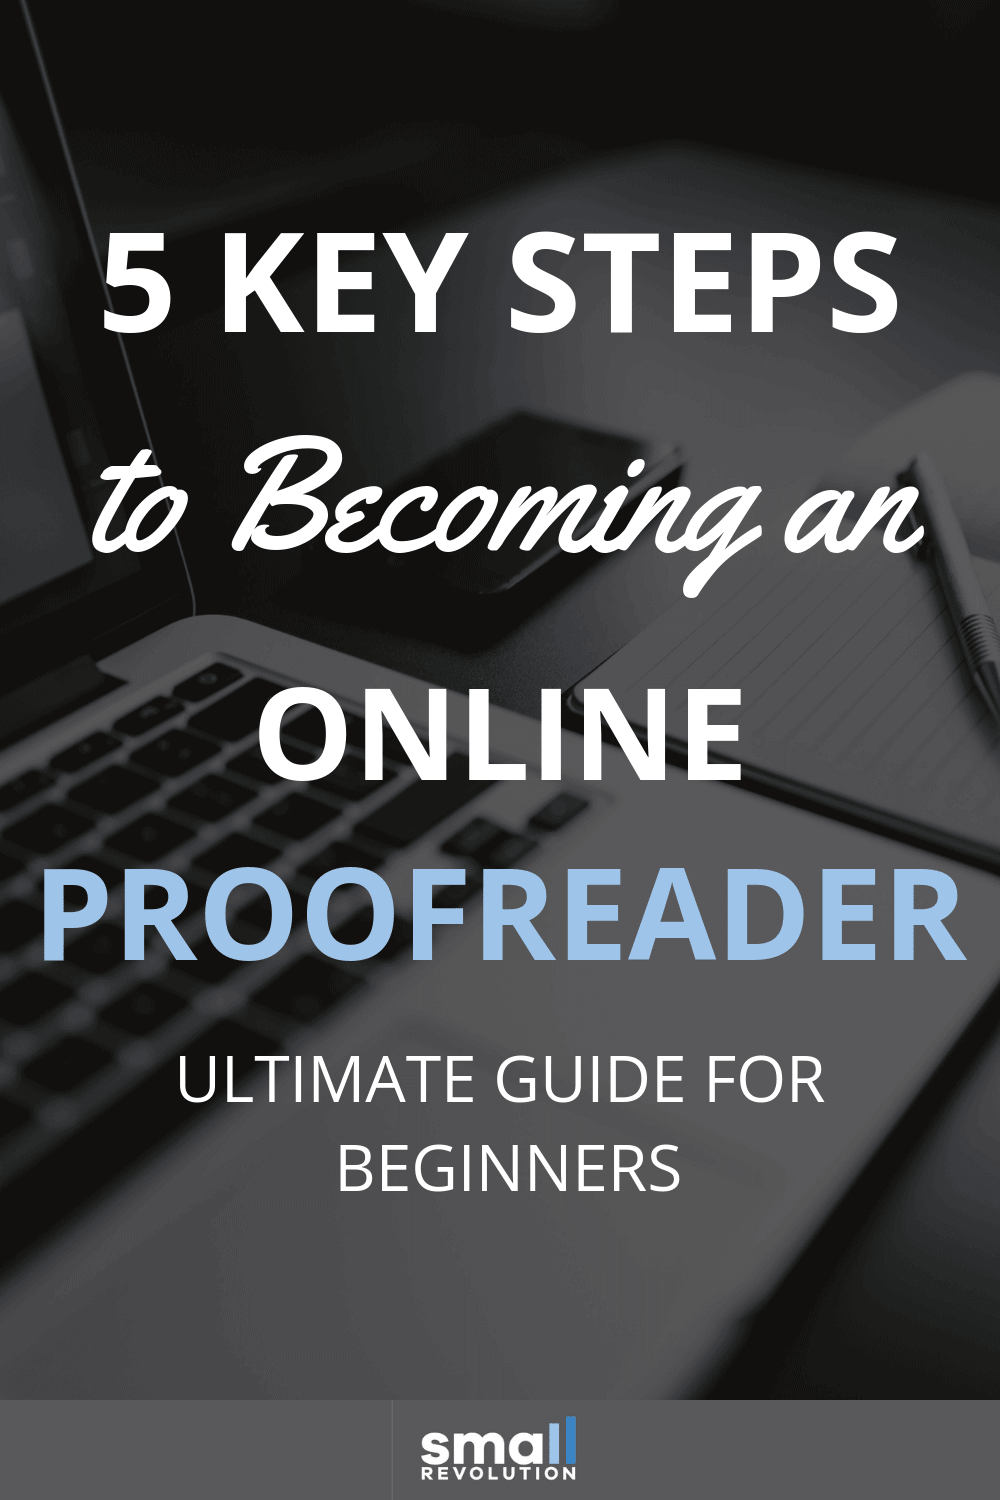 5 key steps to becoming an online proofreader